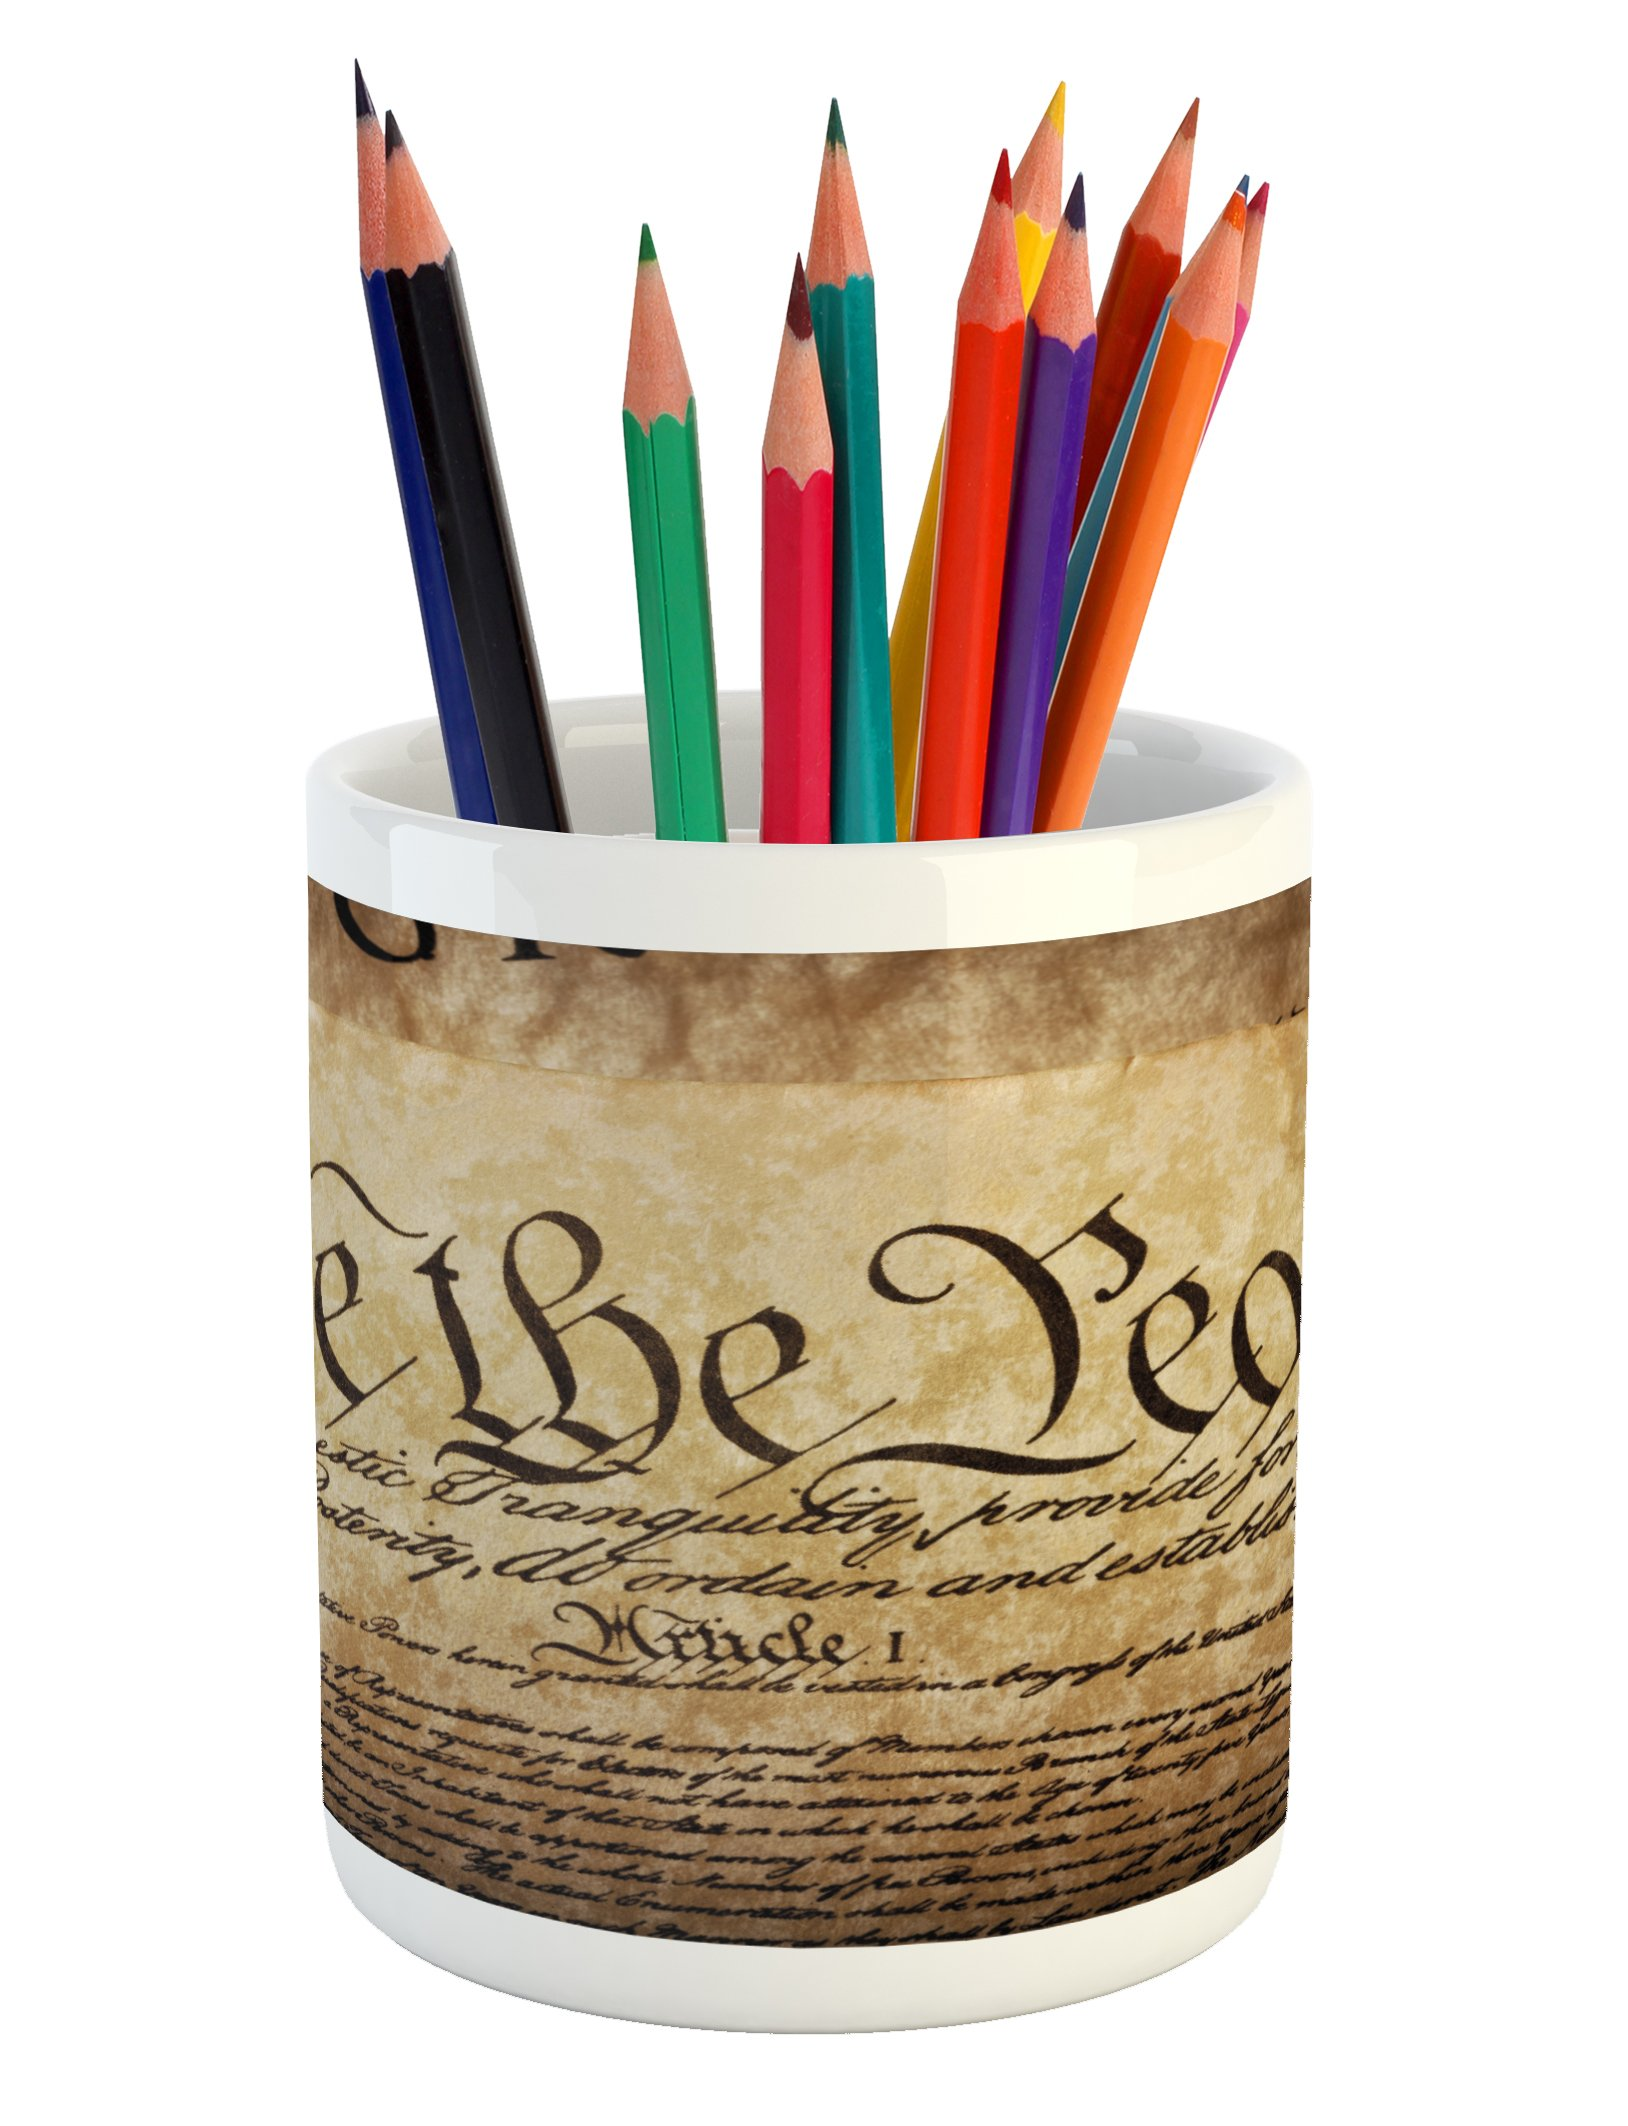 Ambesonne United States Pencil Pen Holder, Vintage Constitution Text of America National Glory Fourth of July Image, Printed Ceramic Pencil Pen Holder for Desk Office Accessory, Pale Brown